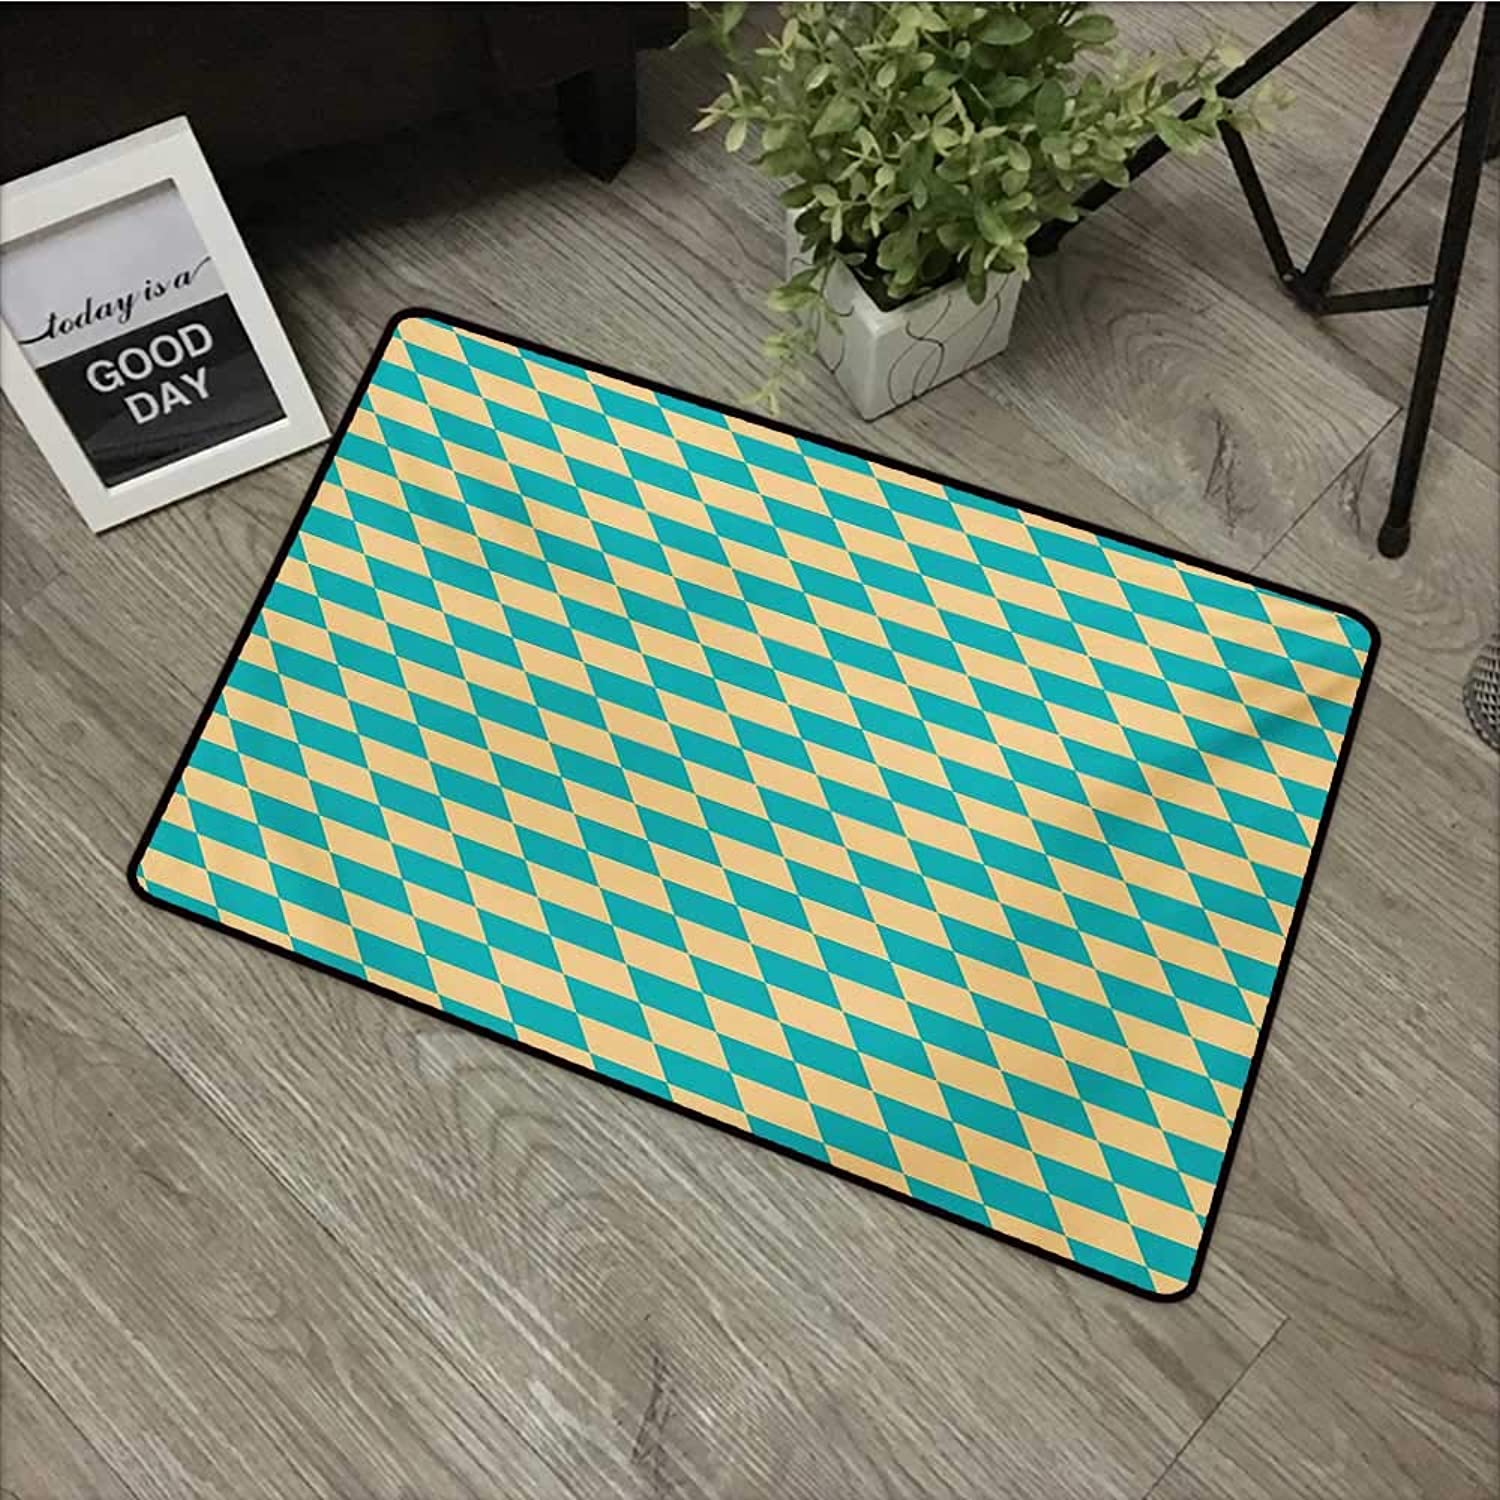 Bathroom Anti-Slip Door mat W35 x L59 INCH Geometric,Art Deco Style Chess Table Dart Like Horizontal Vintage Image,Turquoise and Pale Yellow with Non-Slip Backing Door Mat Carpet